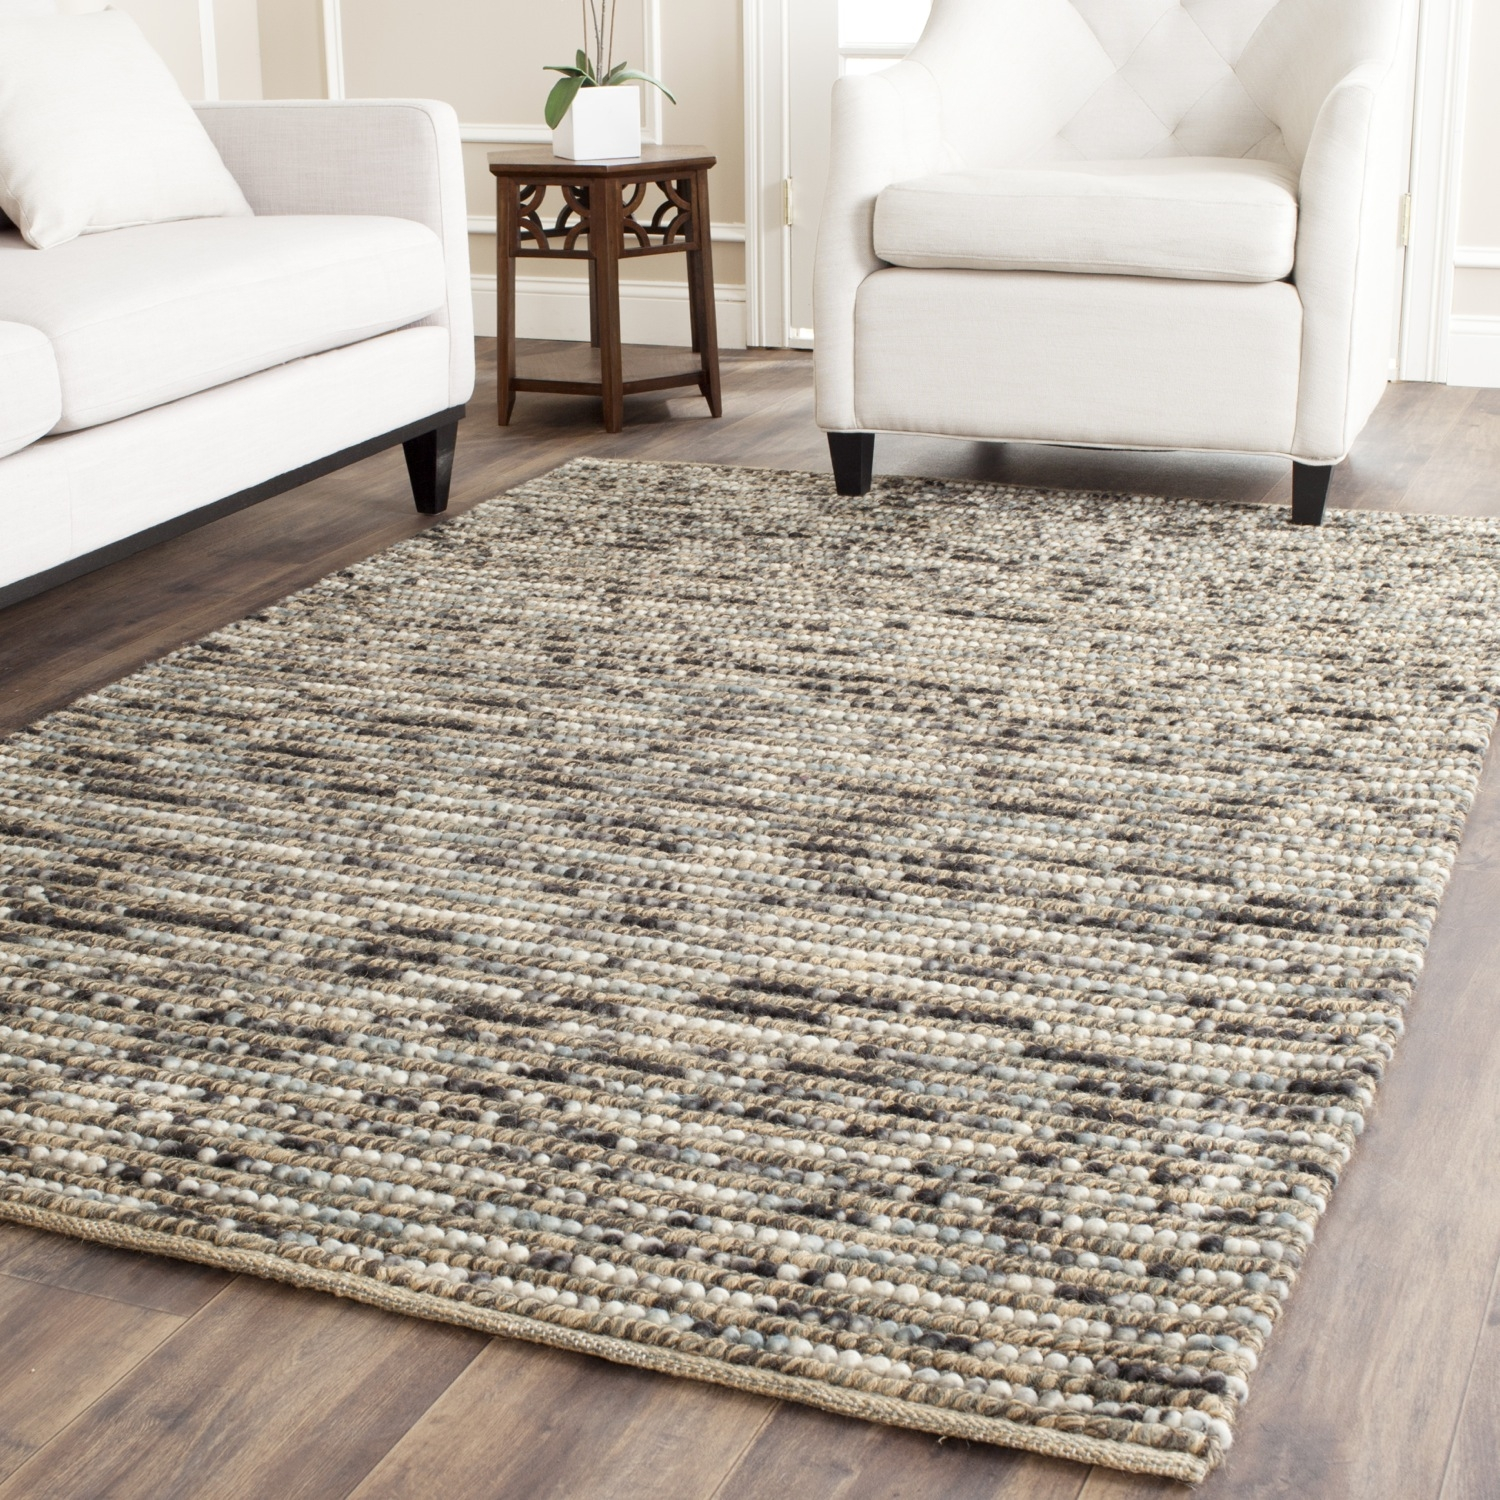 Popular Photo of Natural Wool Area Rugs